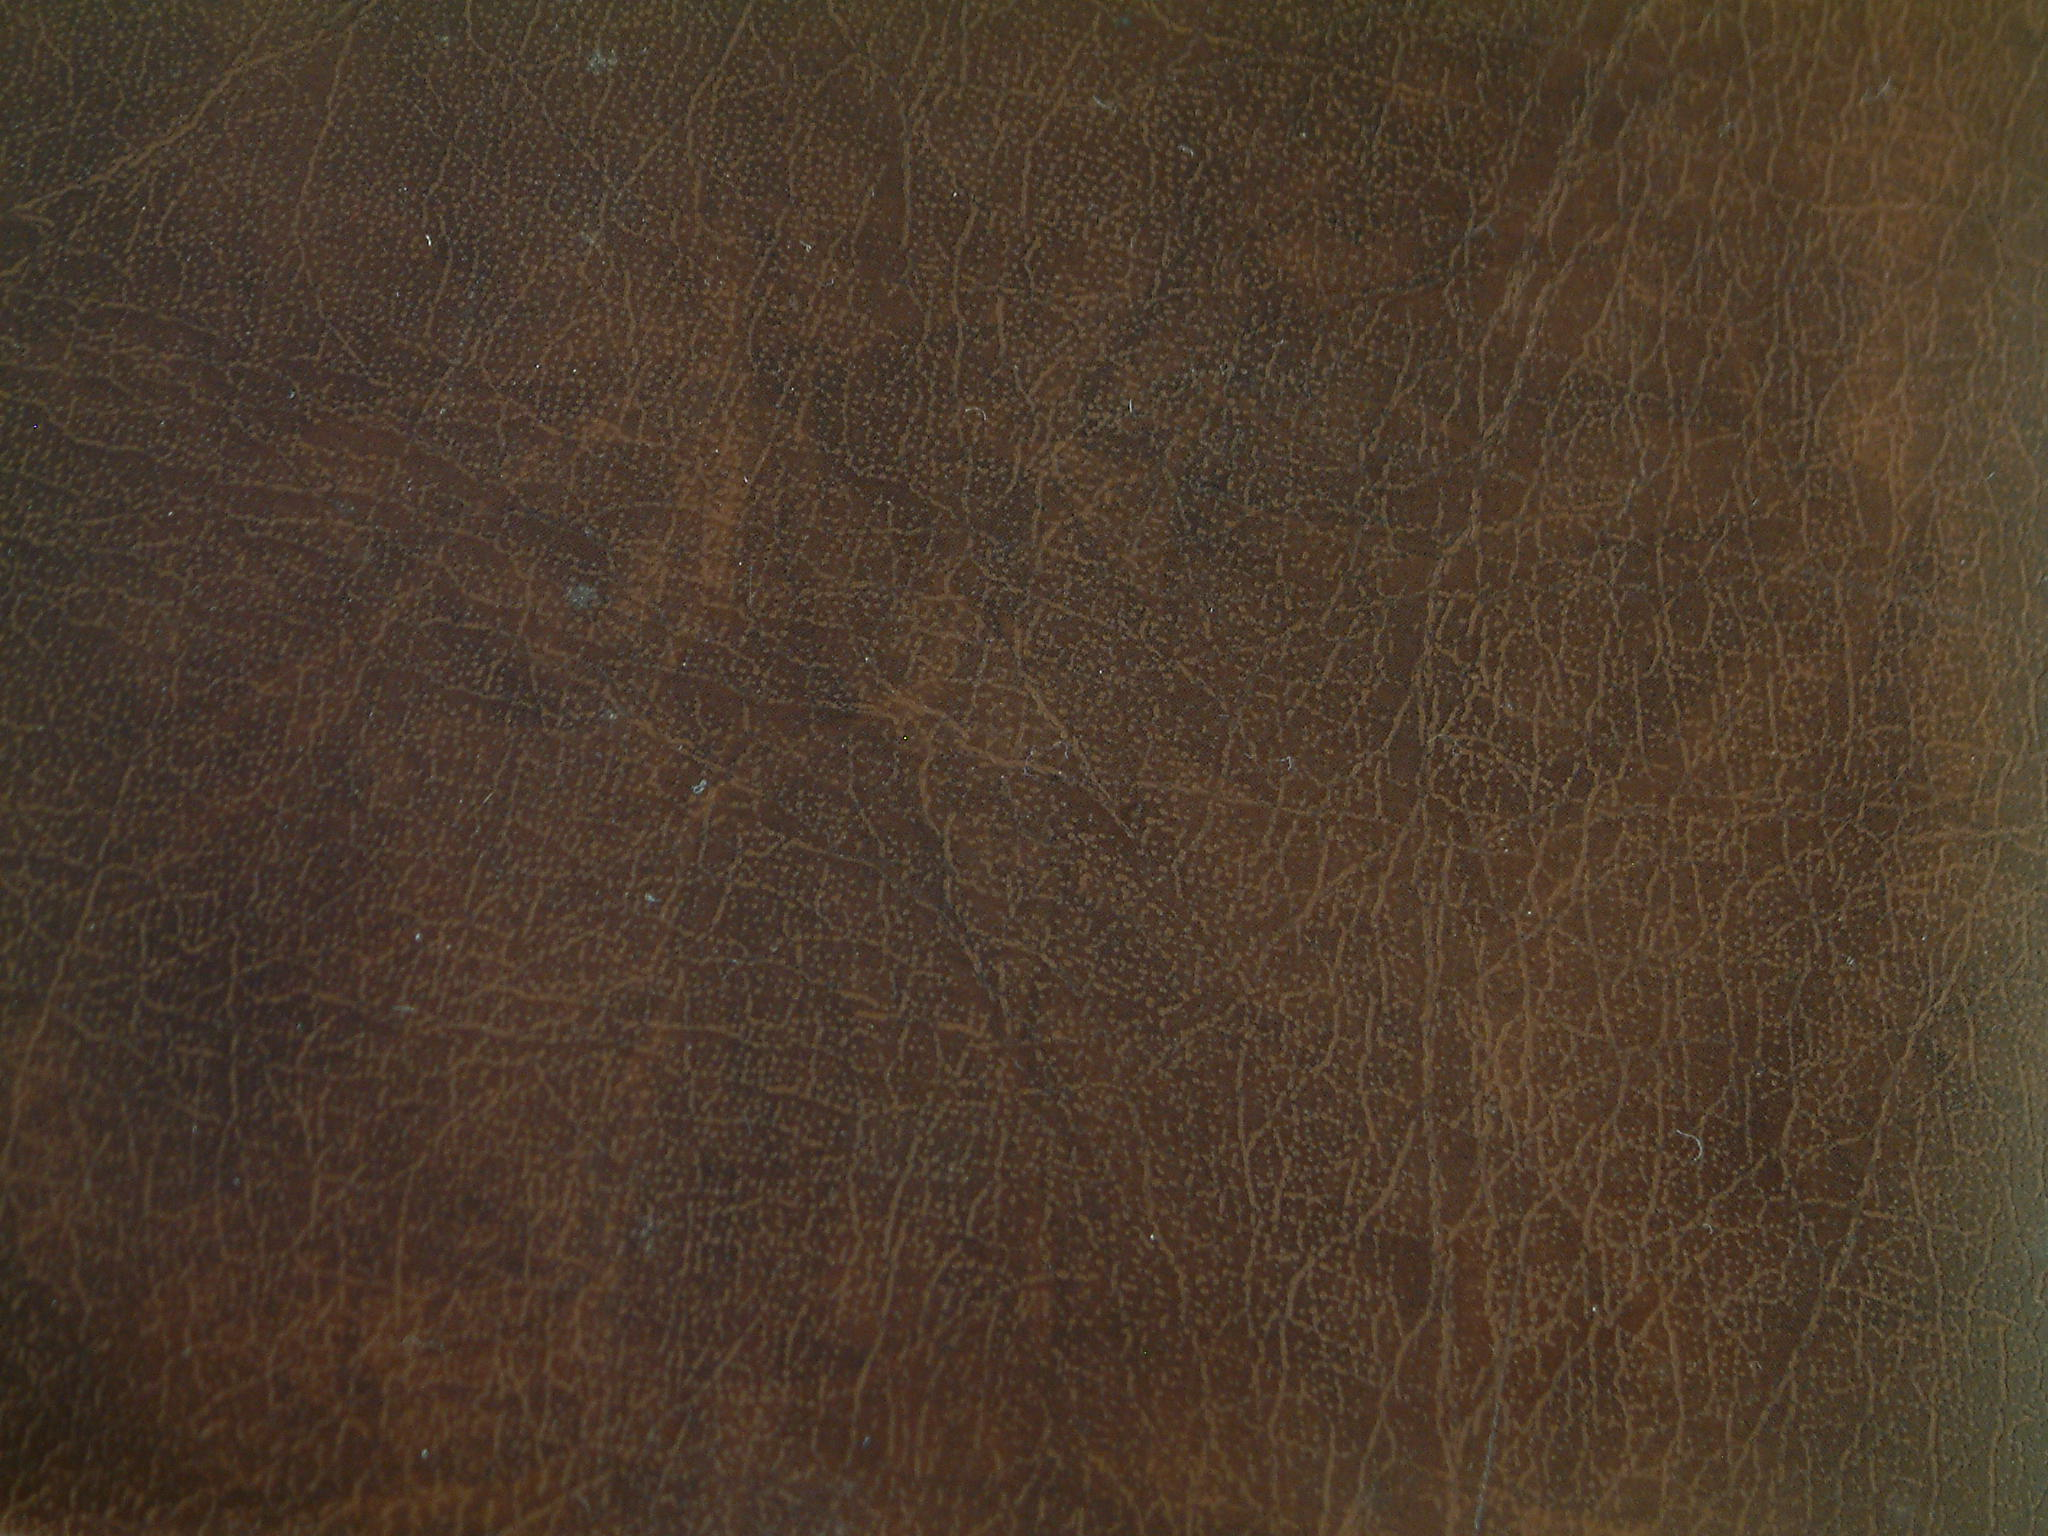 ... Leather Texture 2 by Riverd-Stock